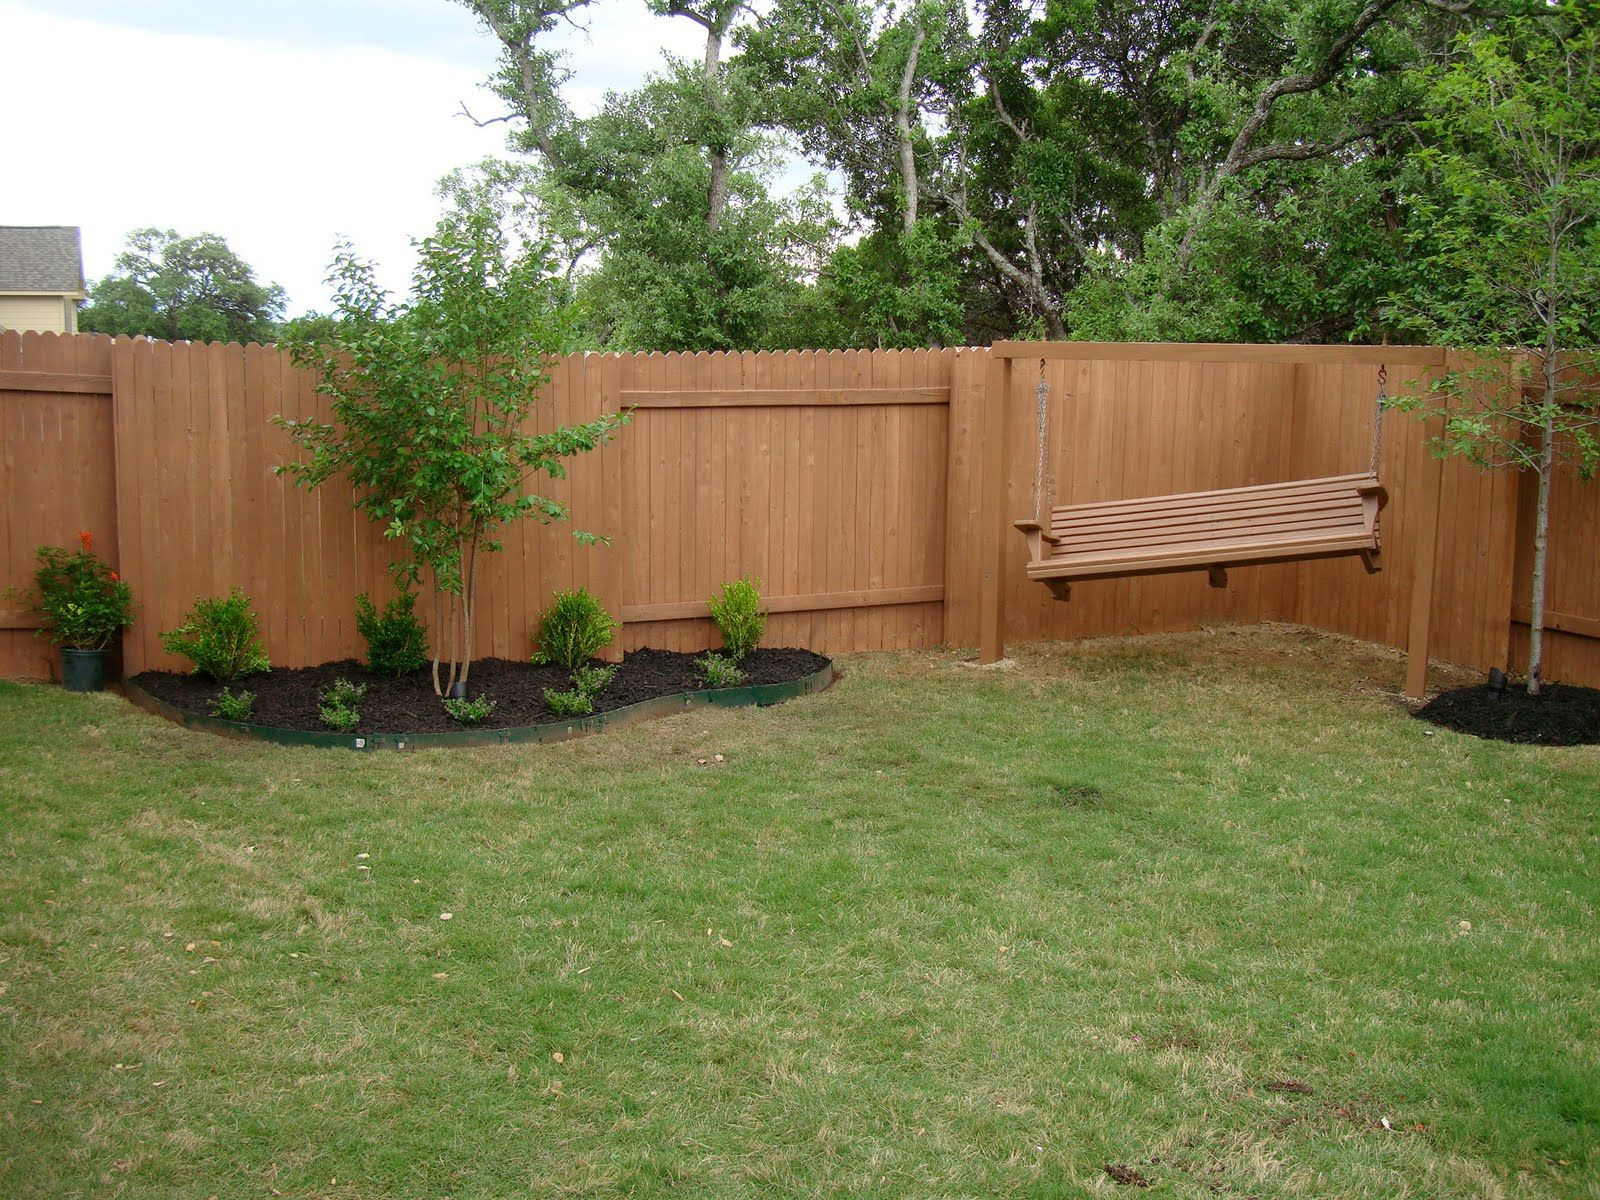 Small bakyards backyard design simple backyard design for Small simple garden design ideas